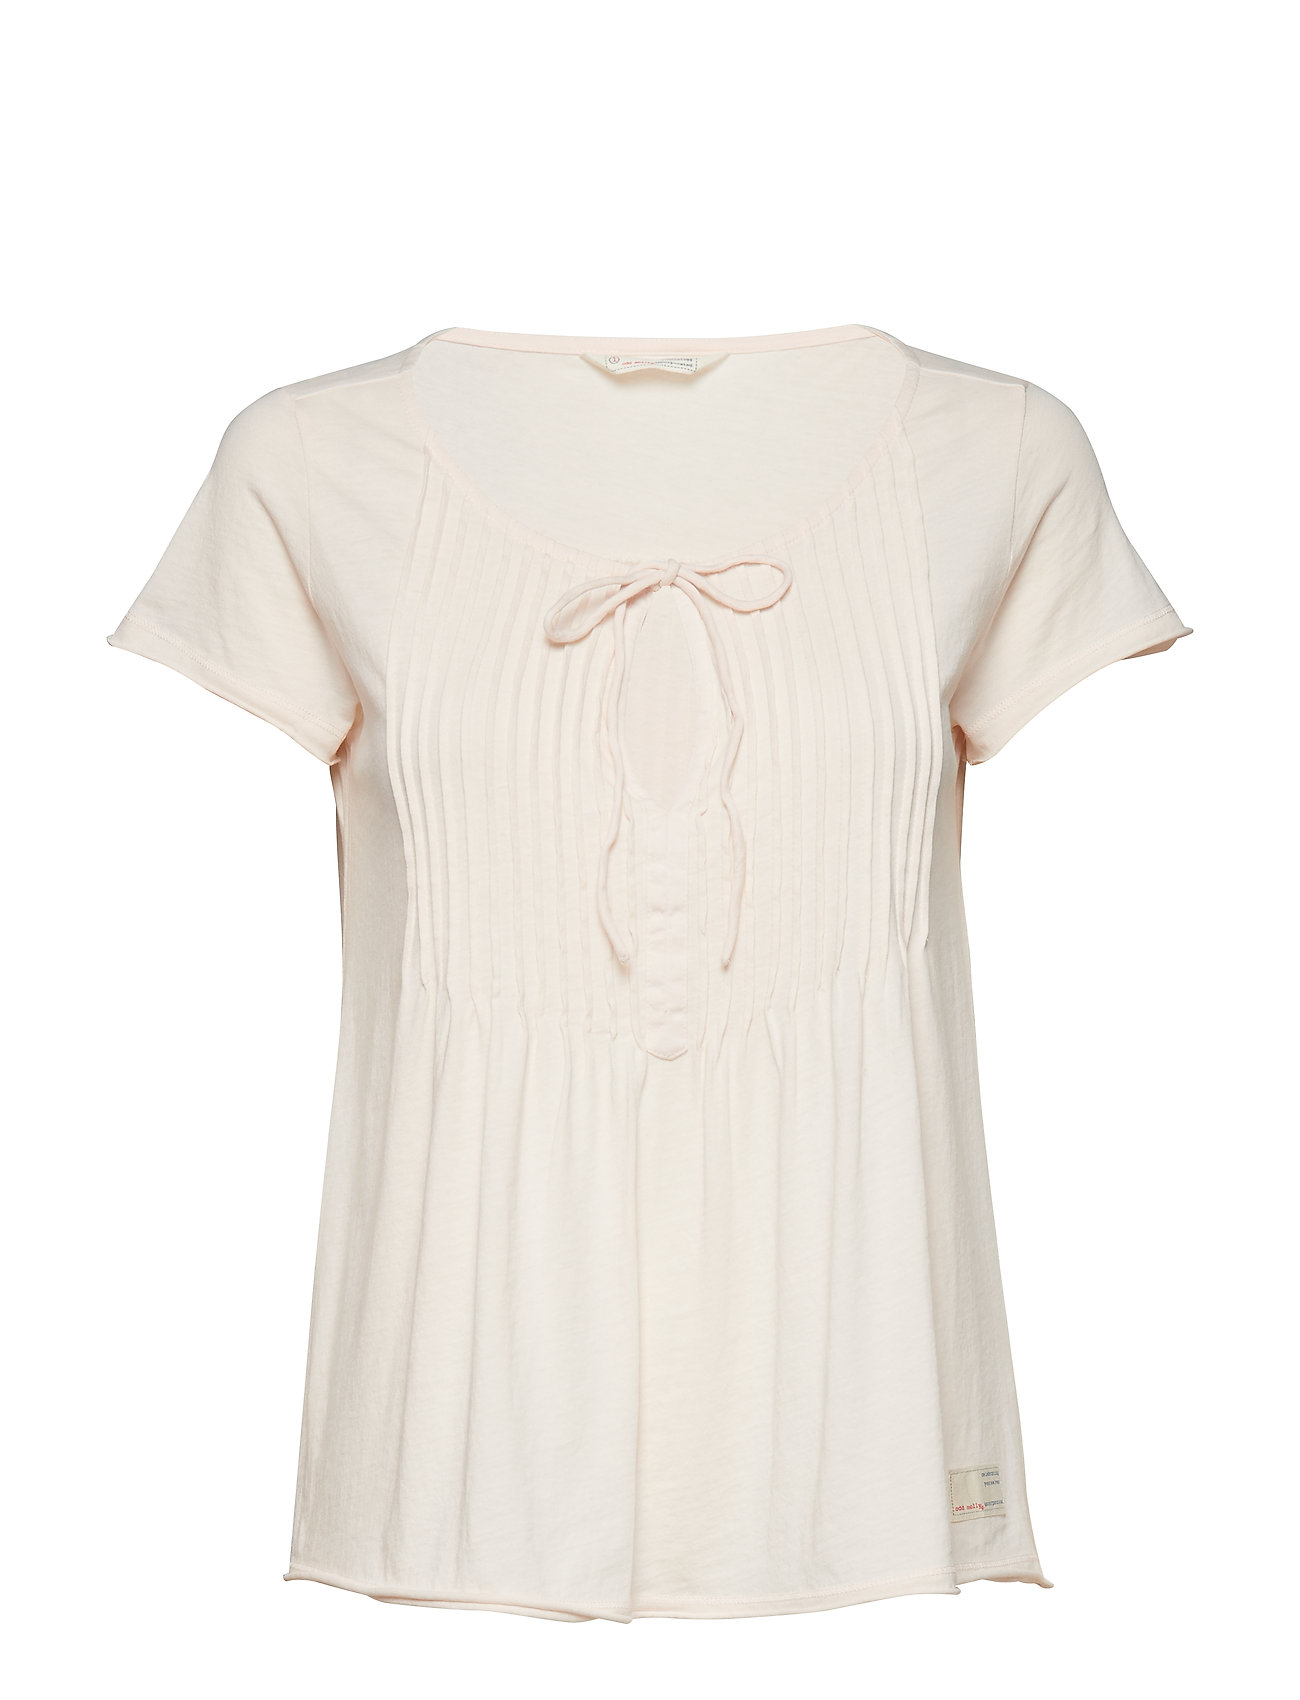 ODD MOLLY jersey girl s/s top - SOFT ROSE